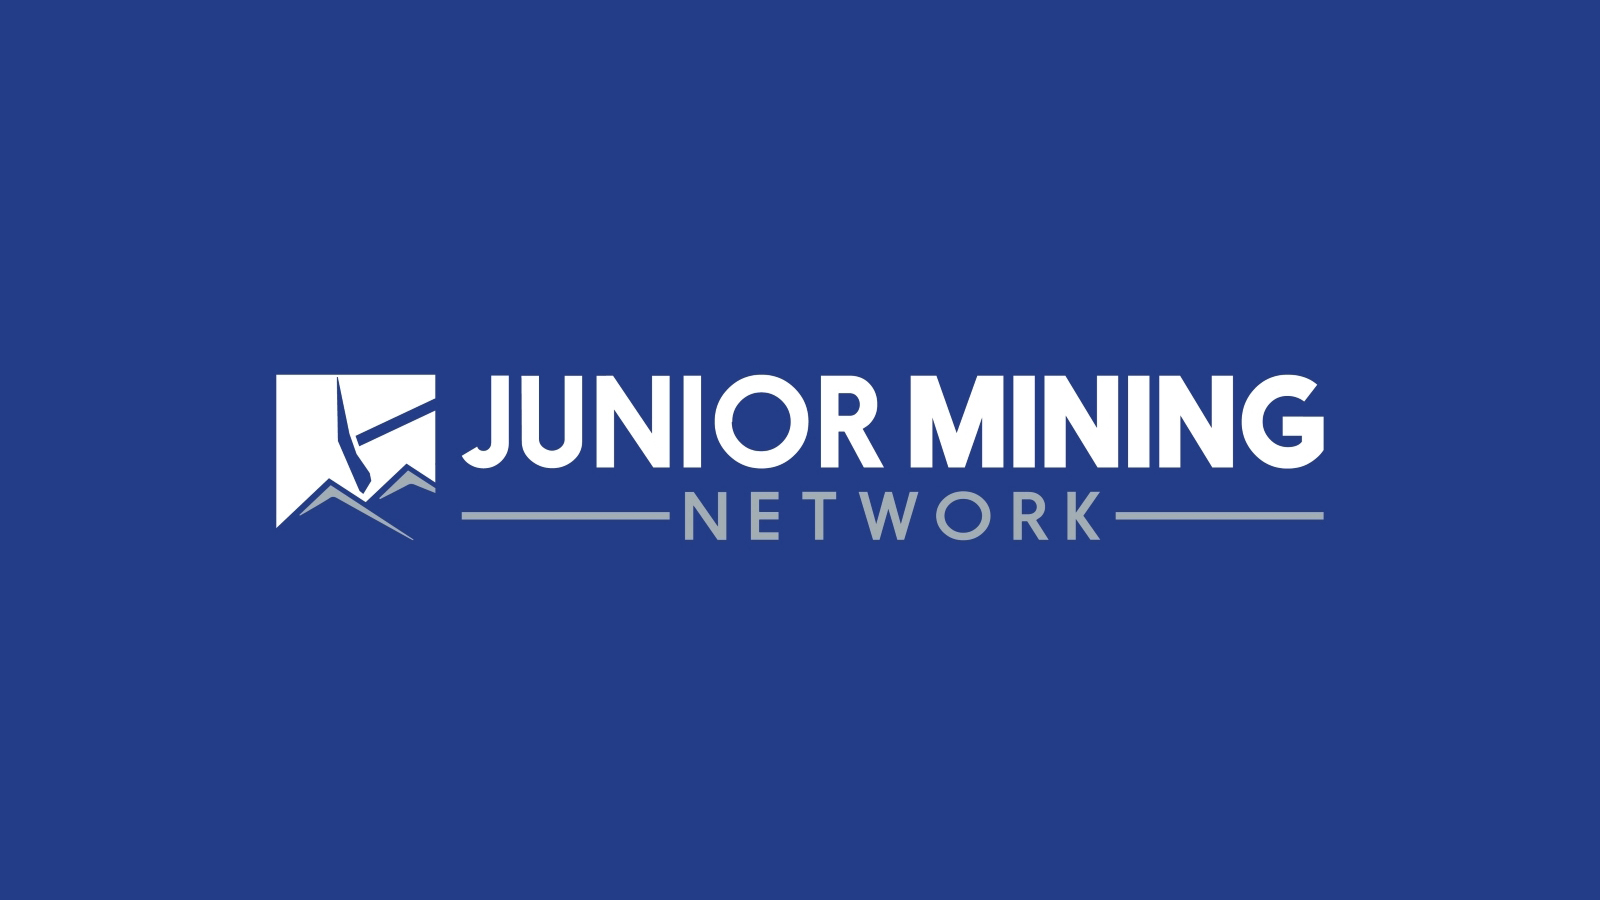 Symbol Mining Resumes Drilling To Increase World Class Zinc Junior